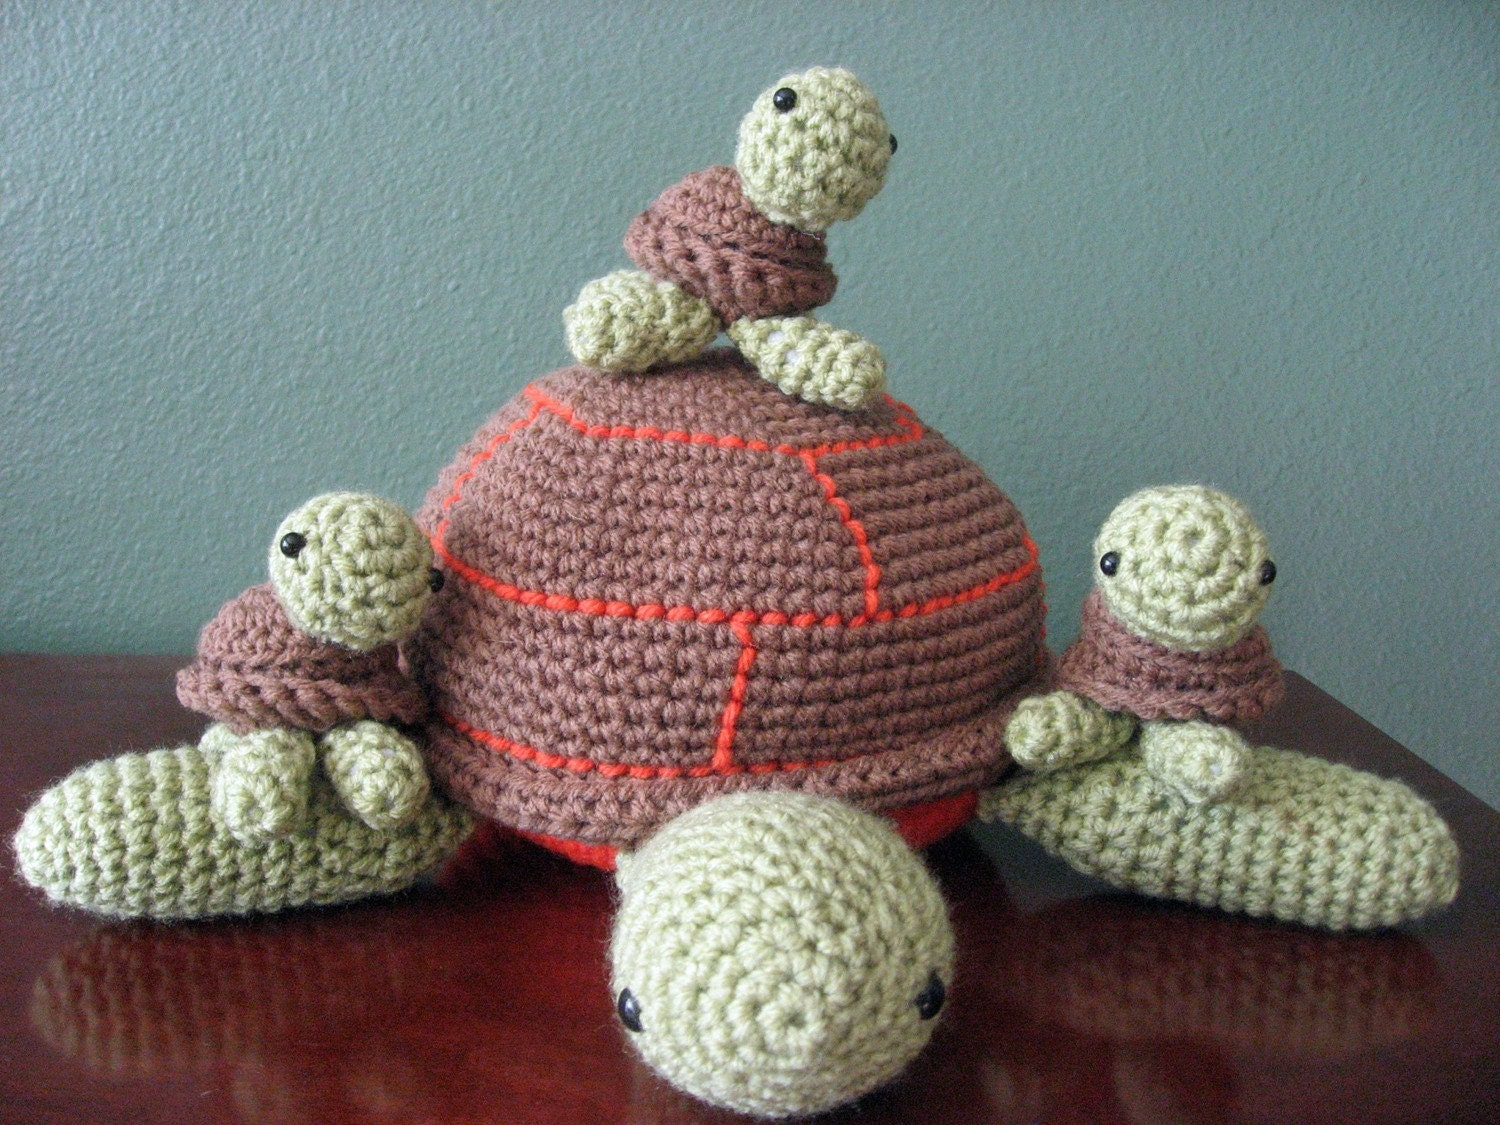 Amigurumi Turtle Family